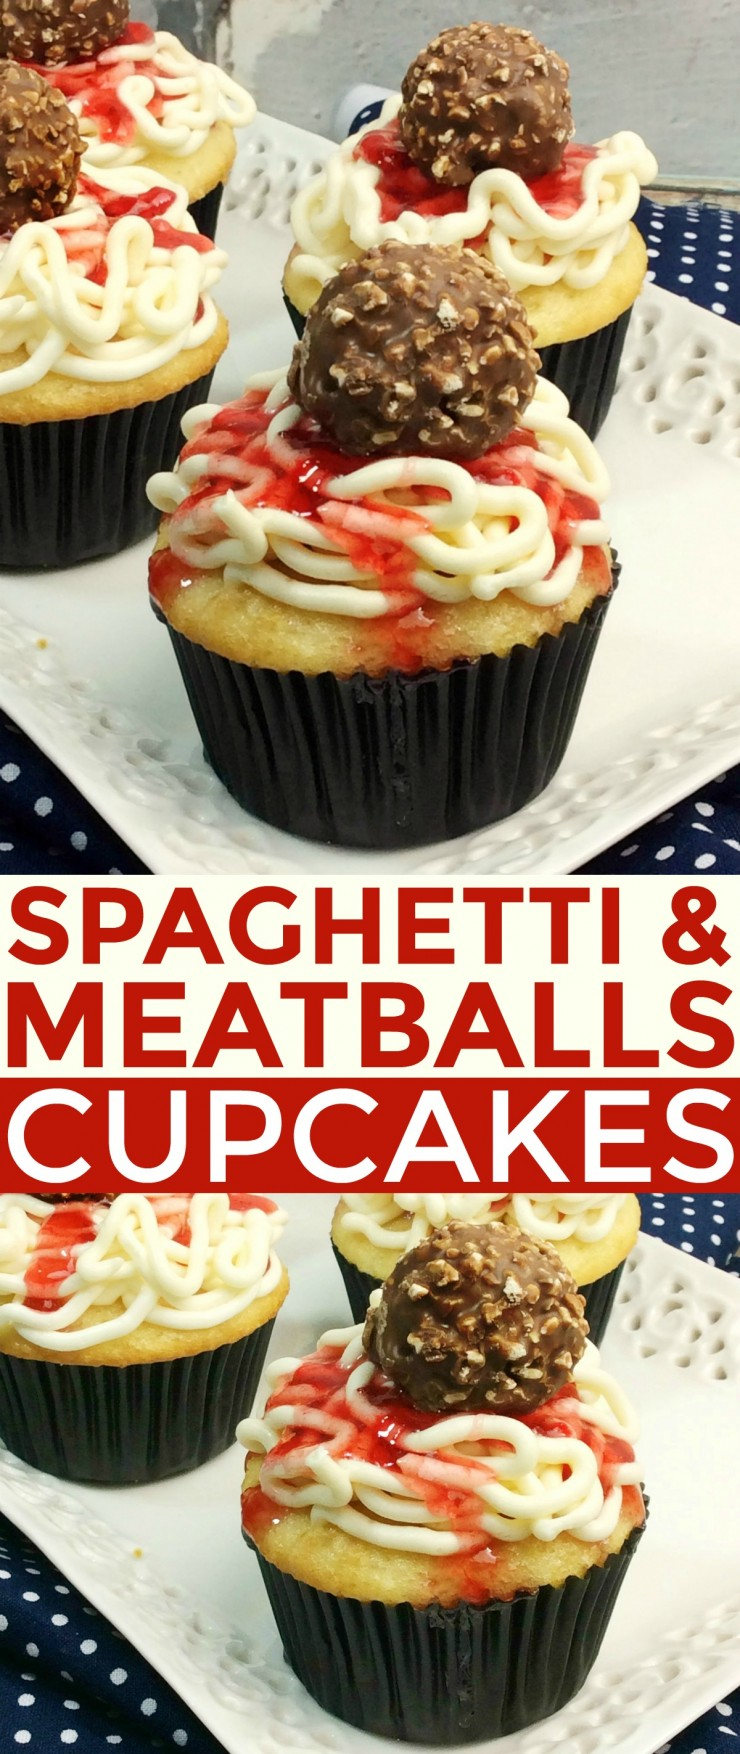 These Spaghetti & Meatballs Cupcakes are a fun treat that everyone is sure to love. How cute are these cupcakes? They look like real spaghetti and meatballs on top of a cupcake! Did it fool you?